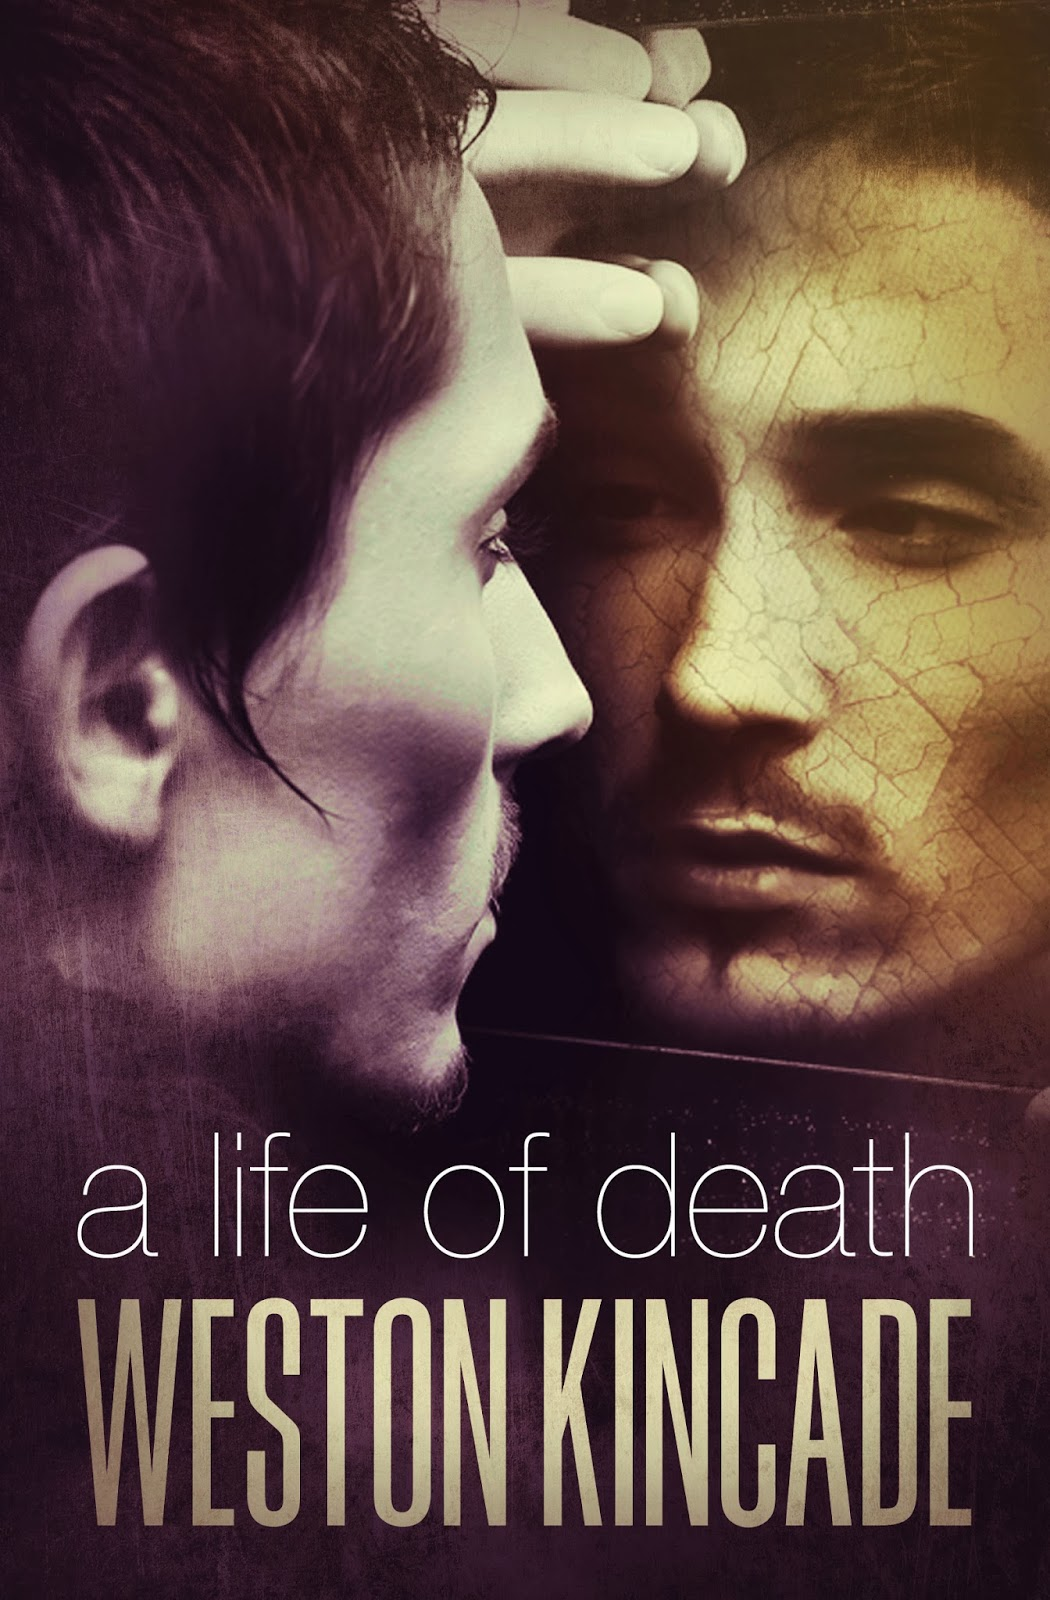 Media Type: Ebook Title: A Life Of Death Author: Weston Kincade Publisher:  Selfpublished Pages: Serial Novel Release Date: June 8, 2011 Source:  Author